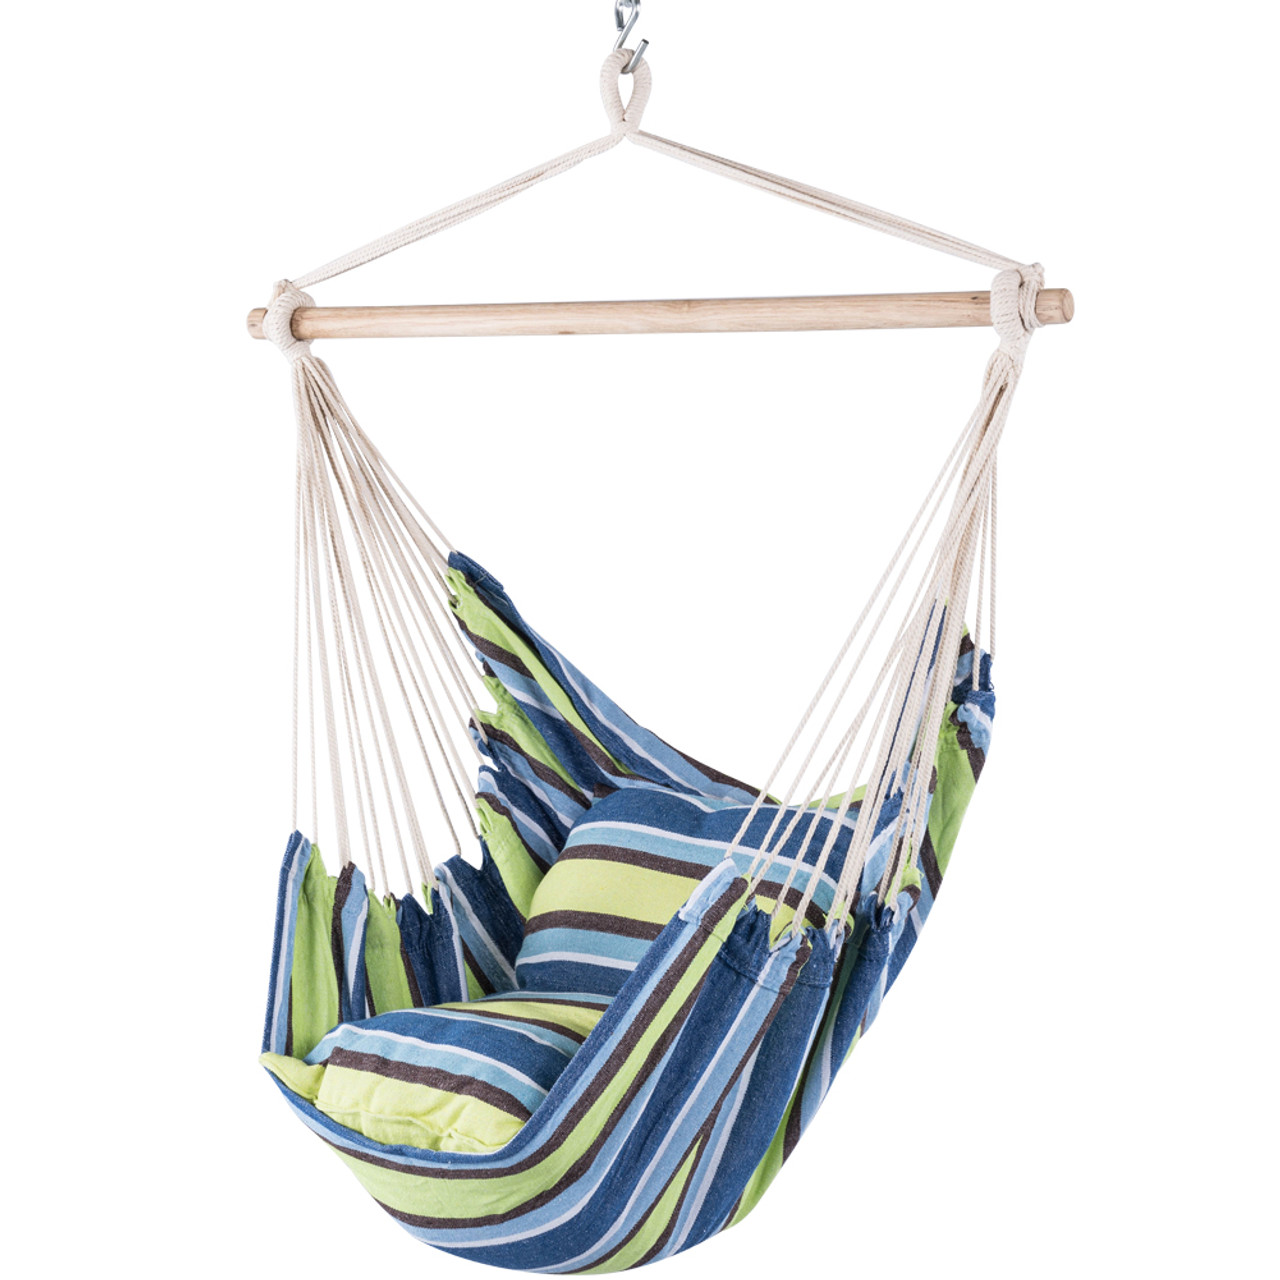 Canvas Hanging Hammock Swing Chair With Cushions Green Blue And Brown